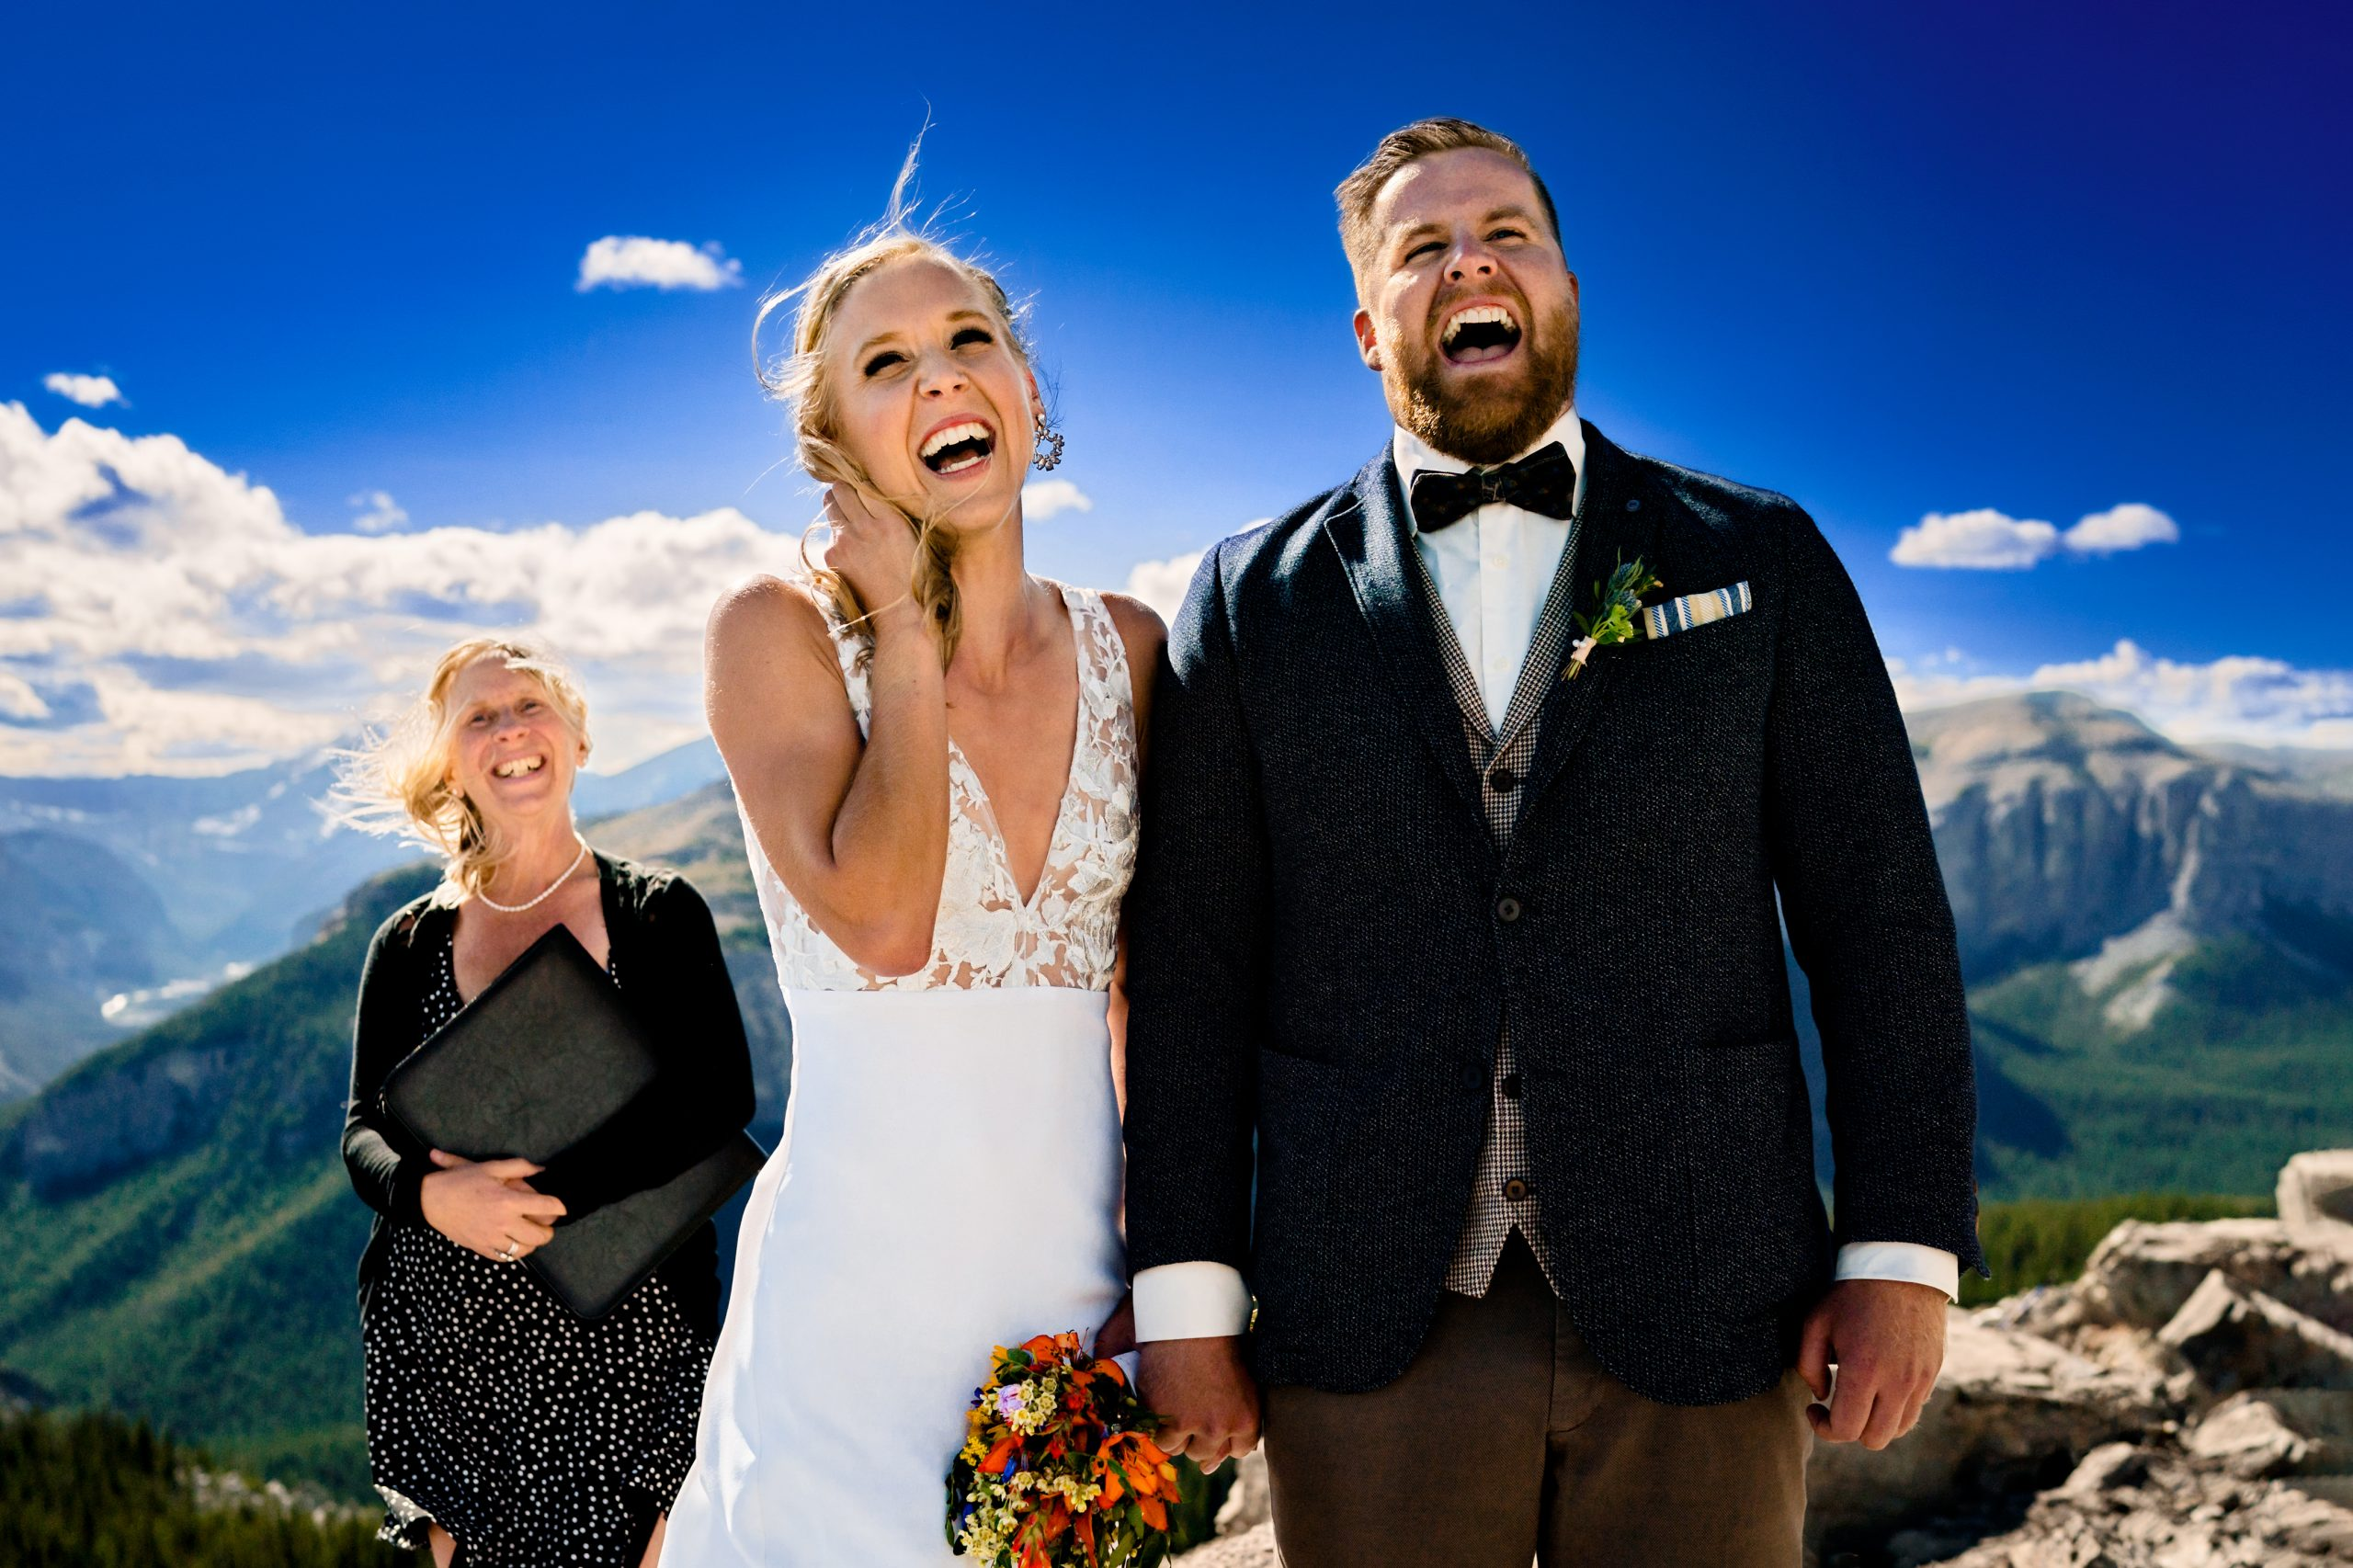 photo of a groom and a bride smiling after getting married on top of a mountain